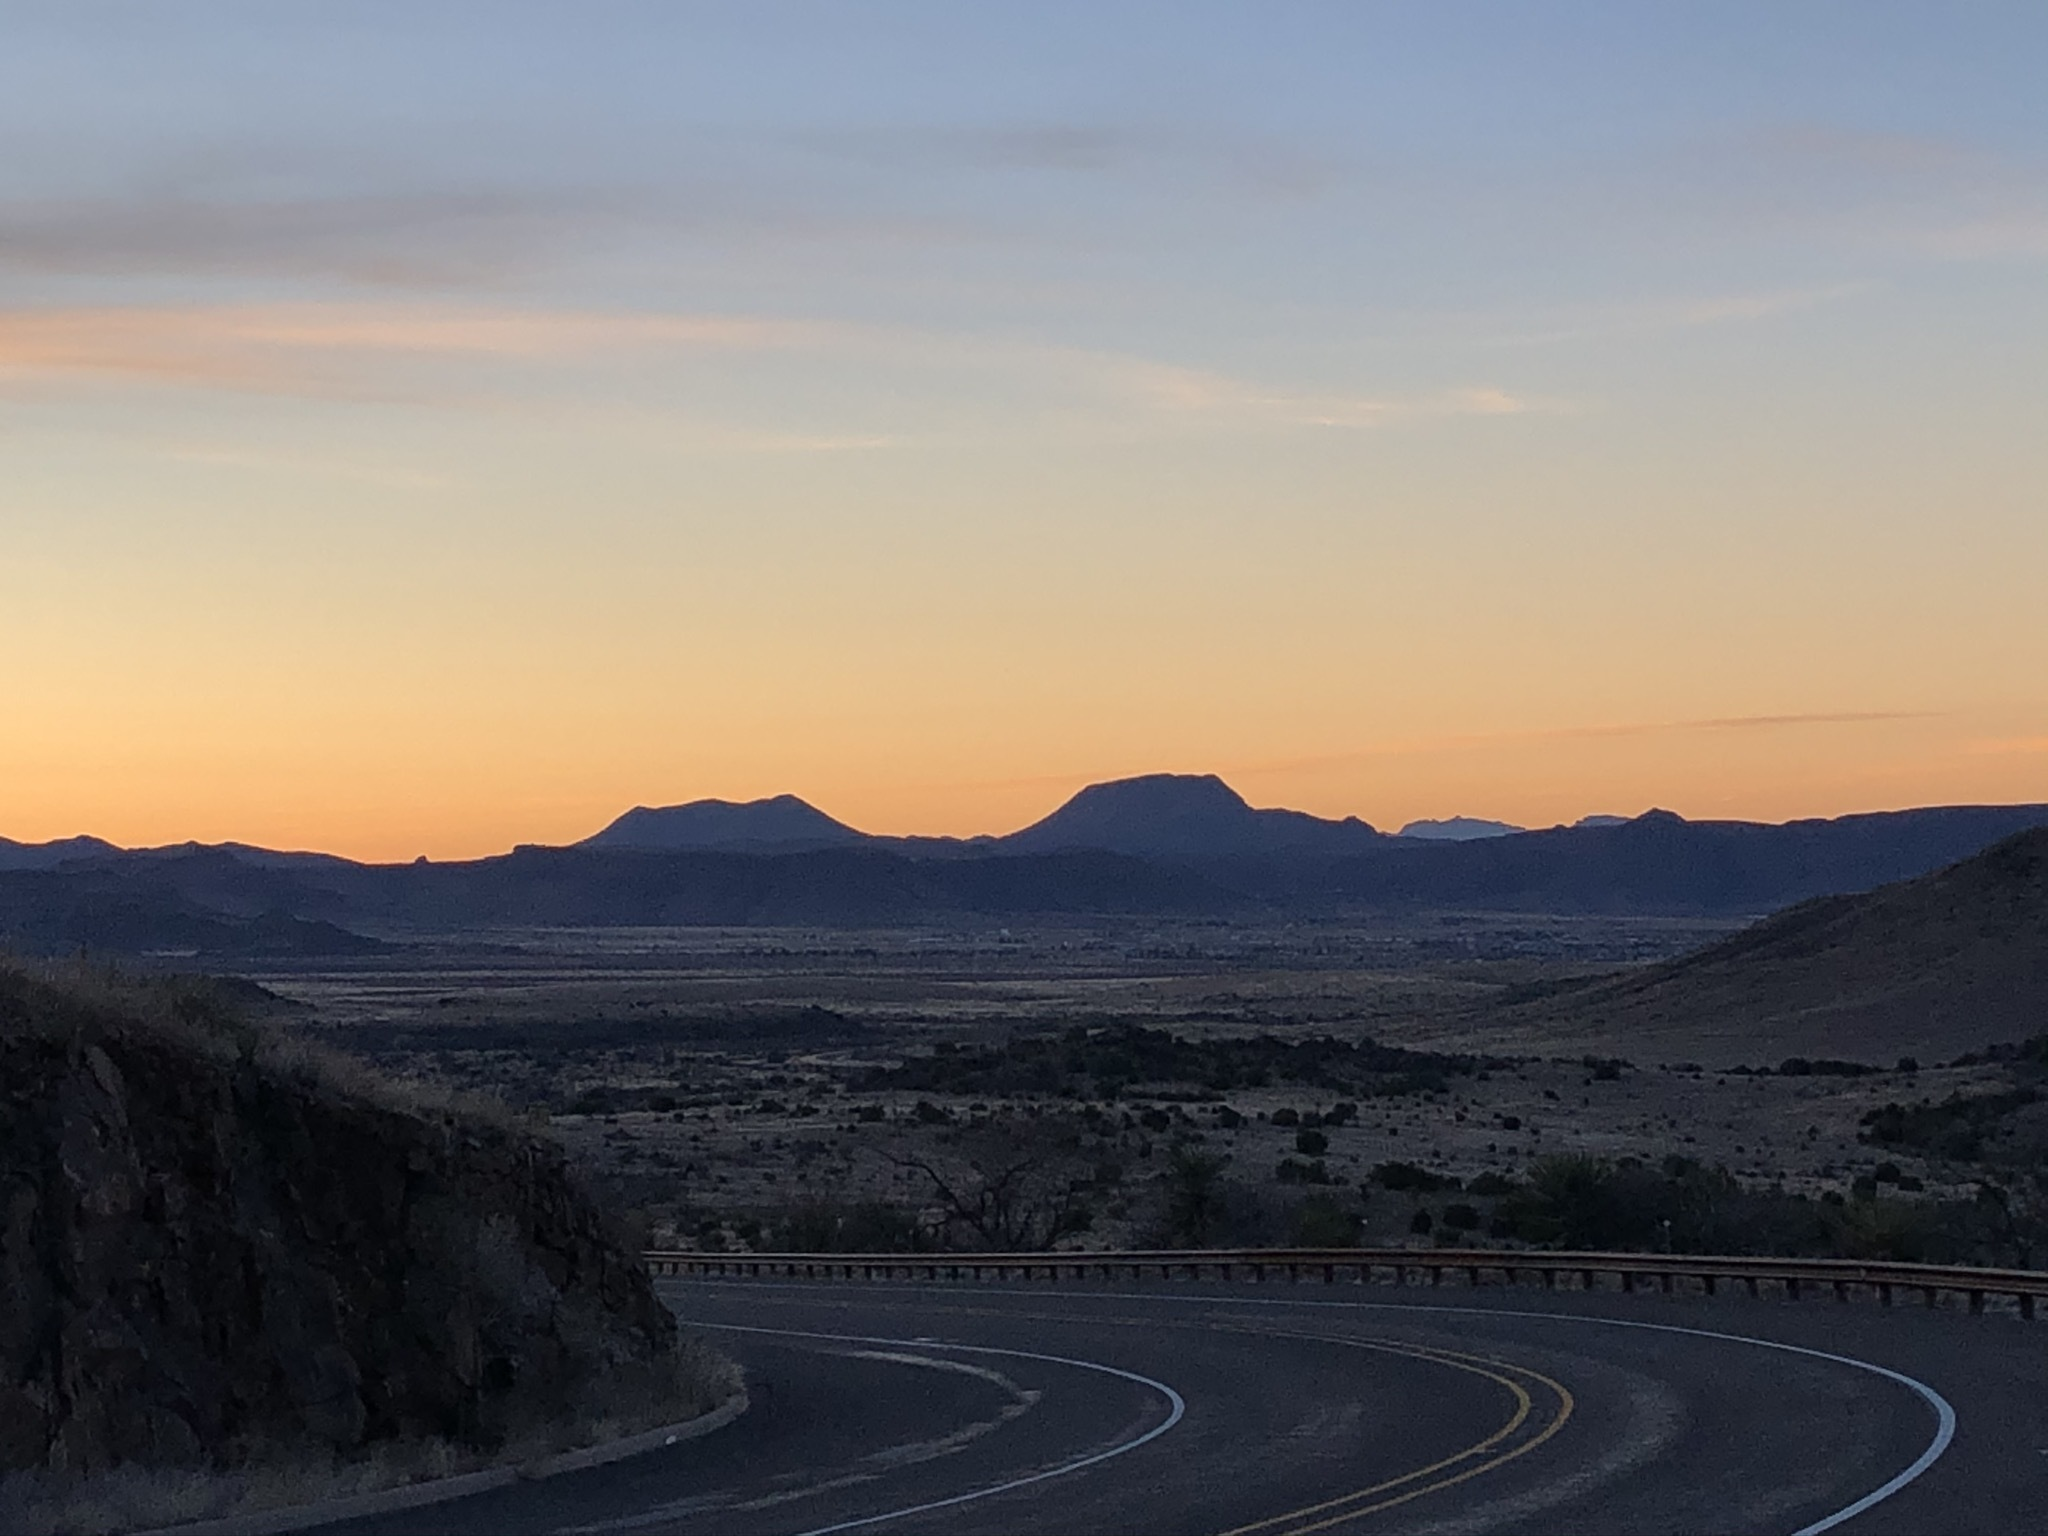 An evening scene in the desert of West Texas, featuring the silhouette of distant mesas beyond a curving lonely road